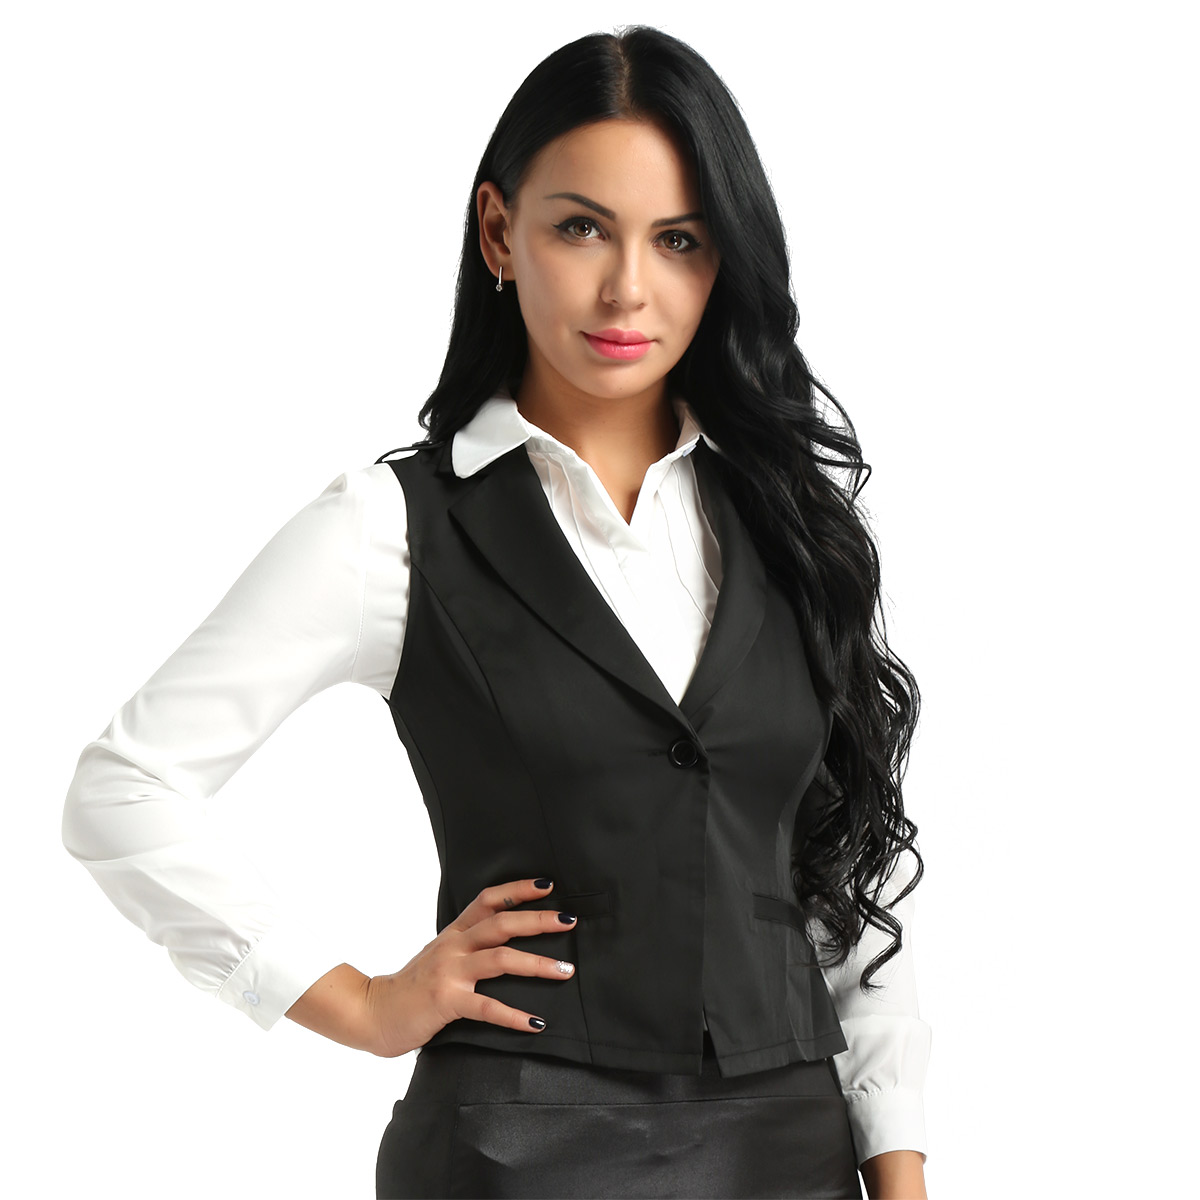 Beyove Womens Waistcoat Fully Lined 4 Button V-Neck Economy Dressy Suit Formal Business Vest